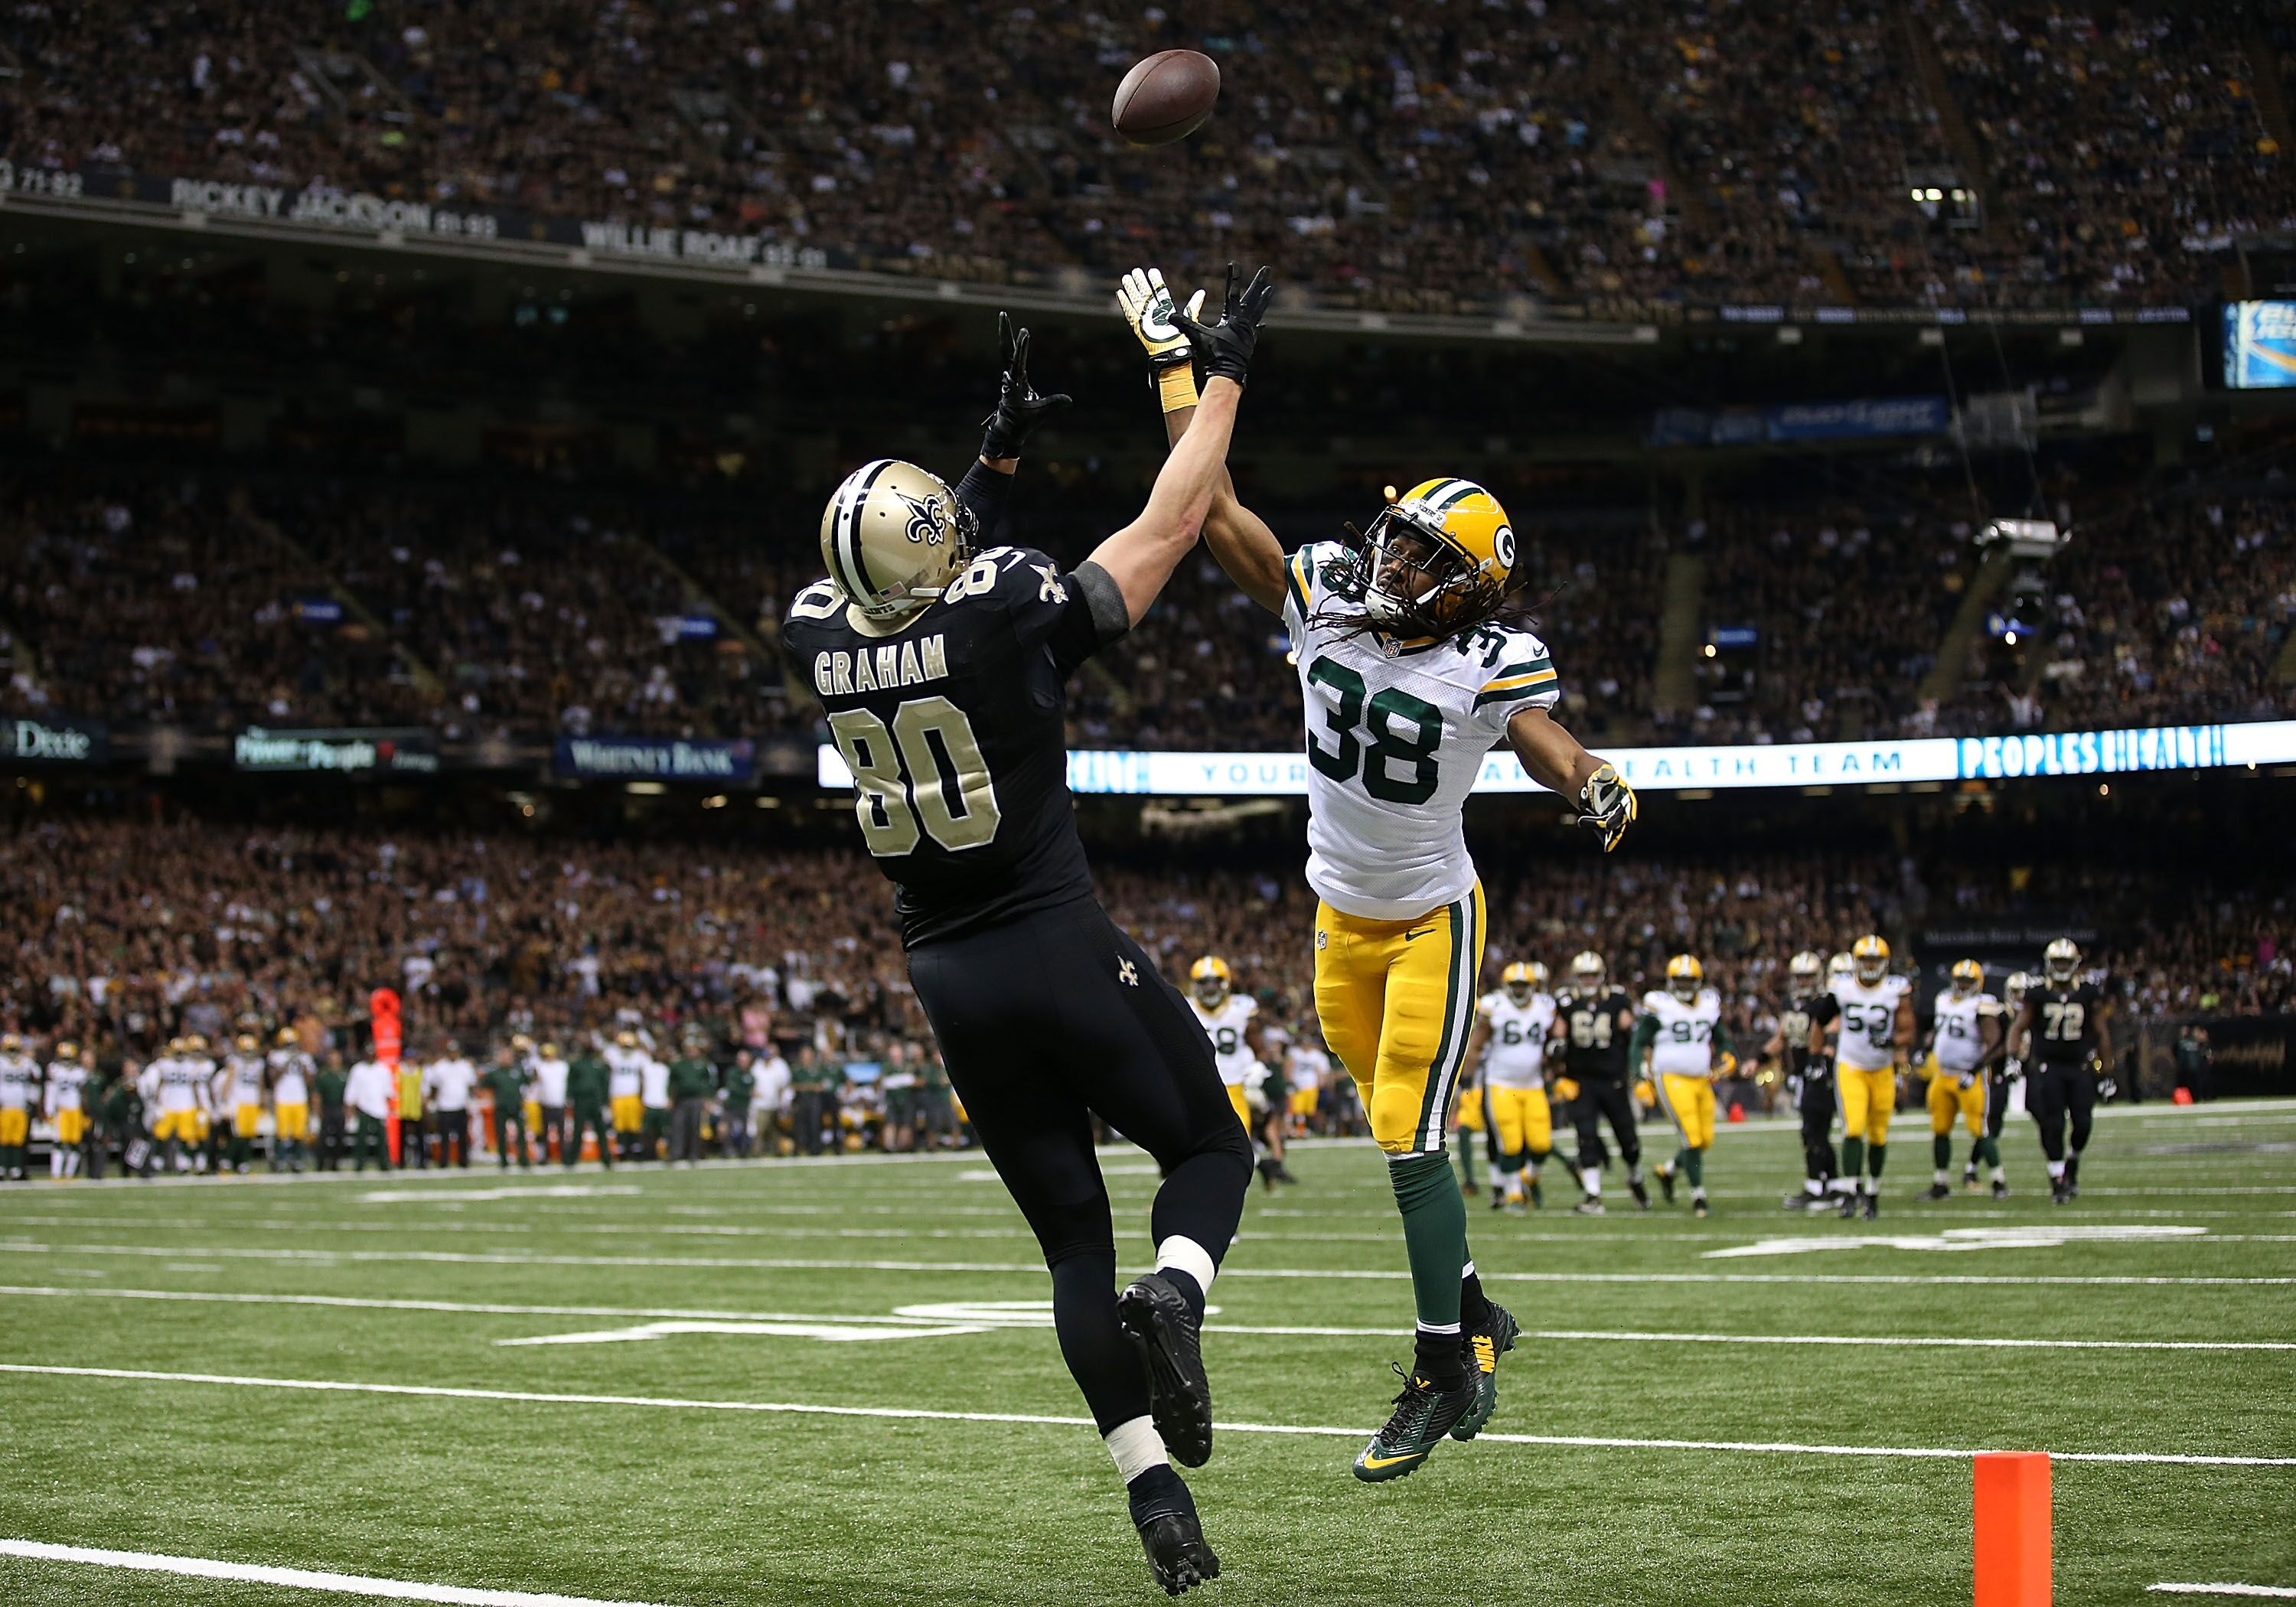 457922388-green-bay-packers-v-new-orleans-saints.jpg